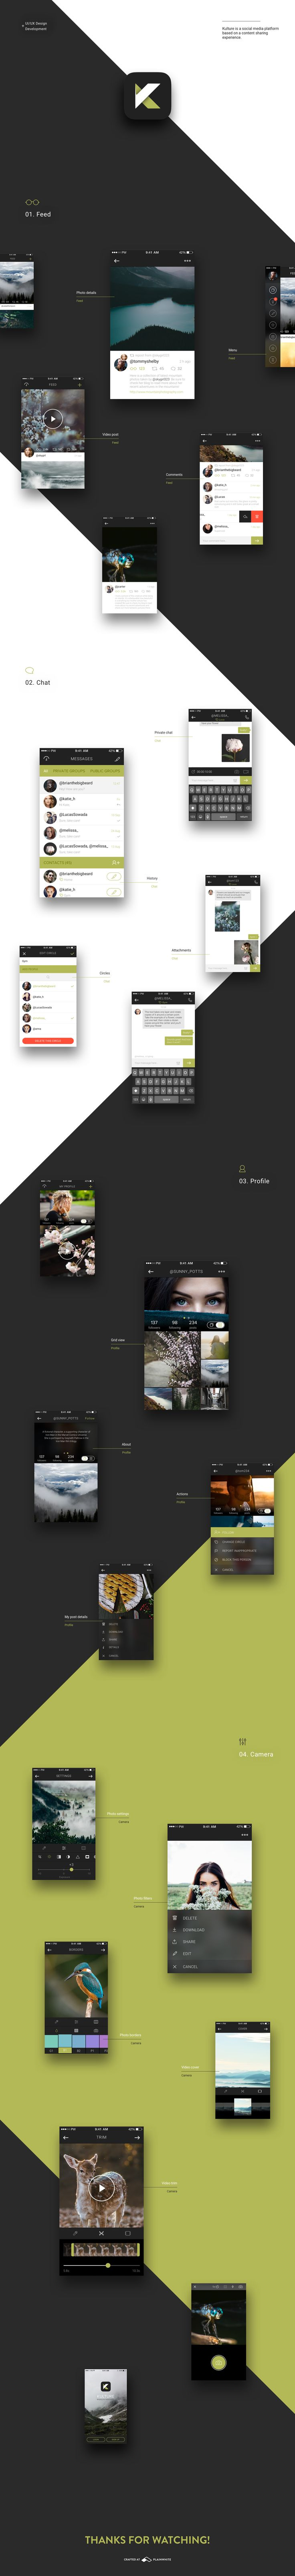 KULTURE is a social network based on media content sharing.Services we provided: UX Design, UI Design, Motion Design, App Icon Design, Frontend & Backend Development.